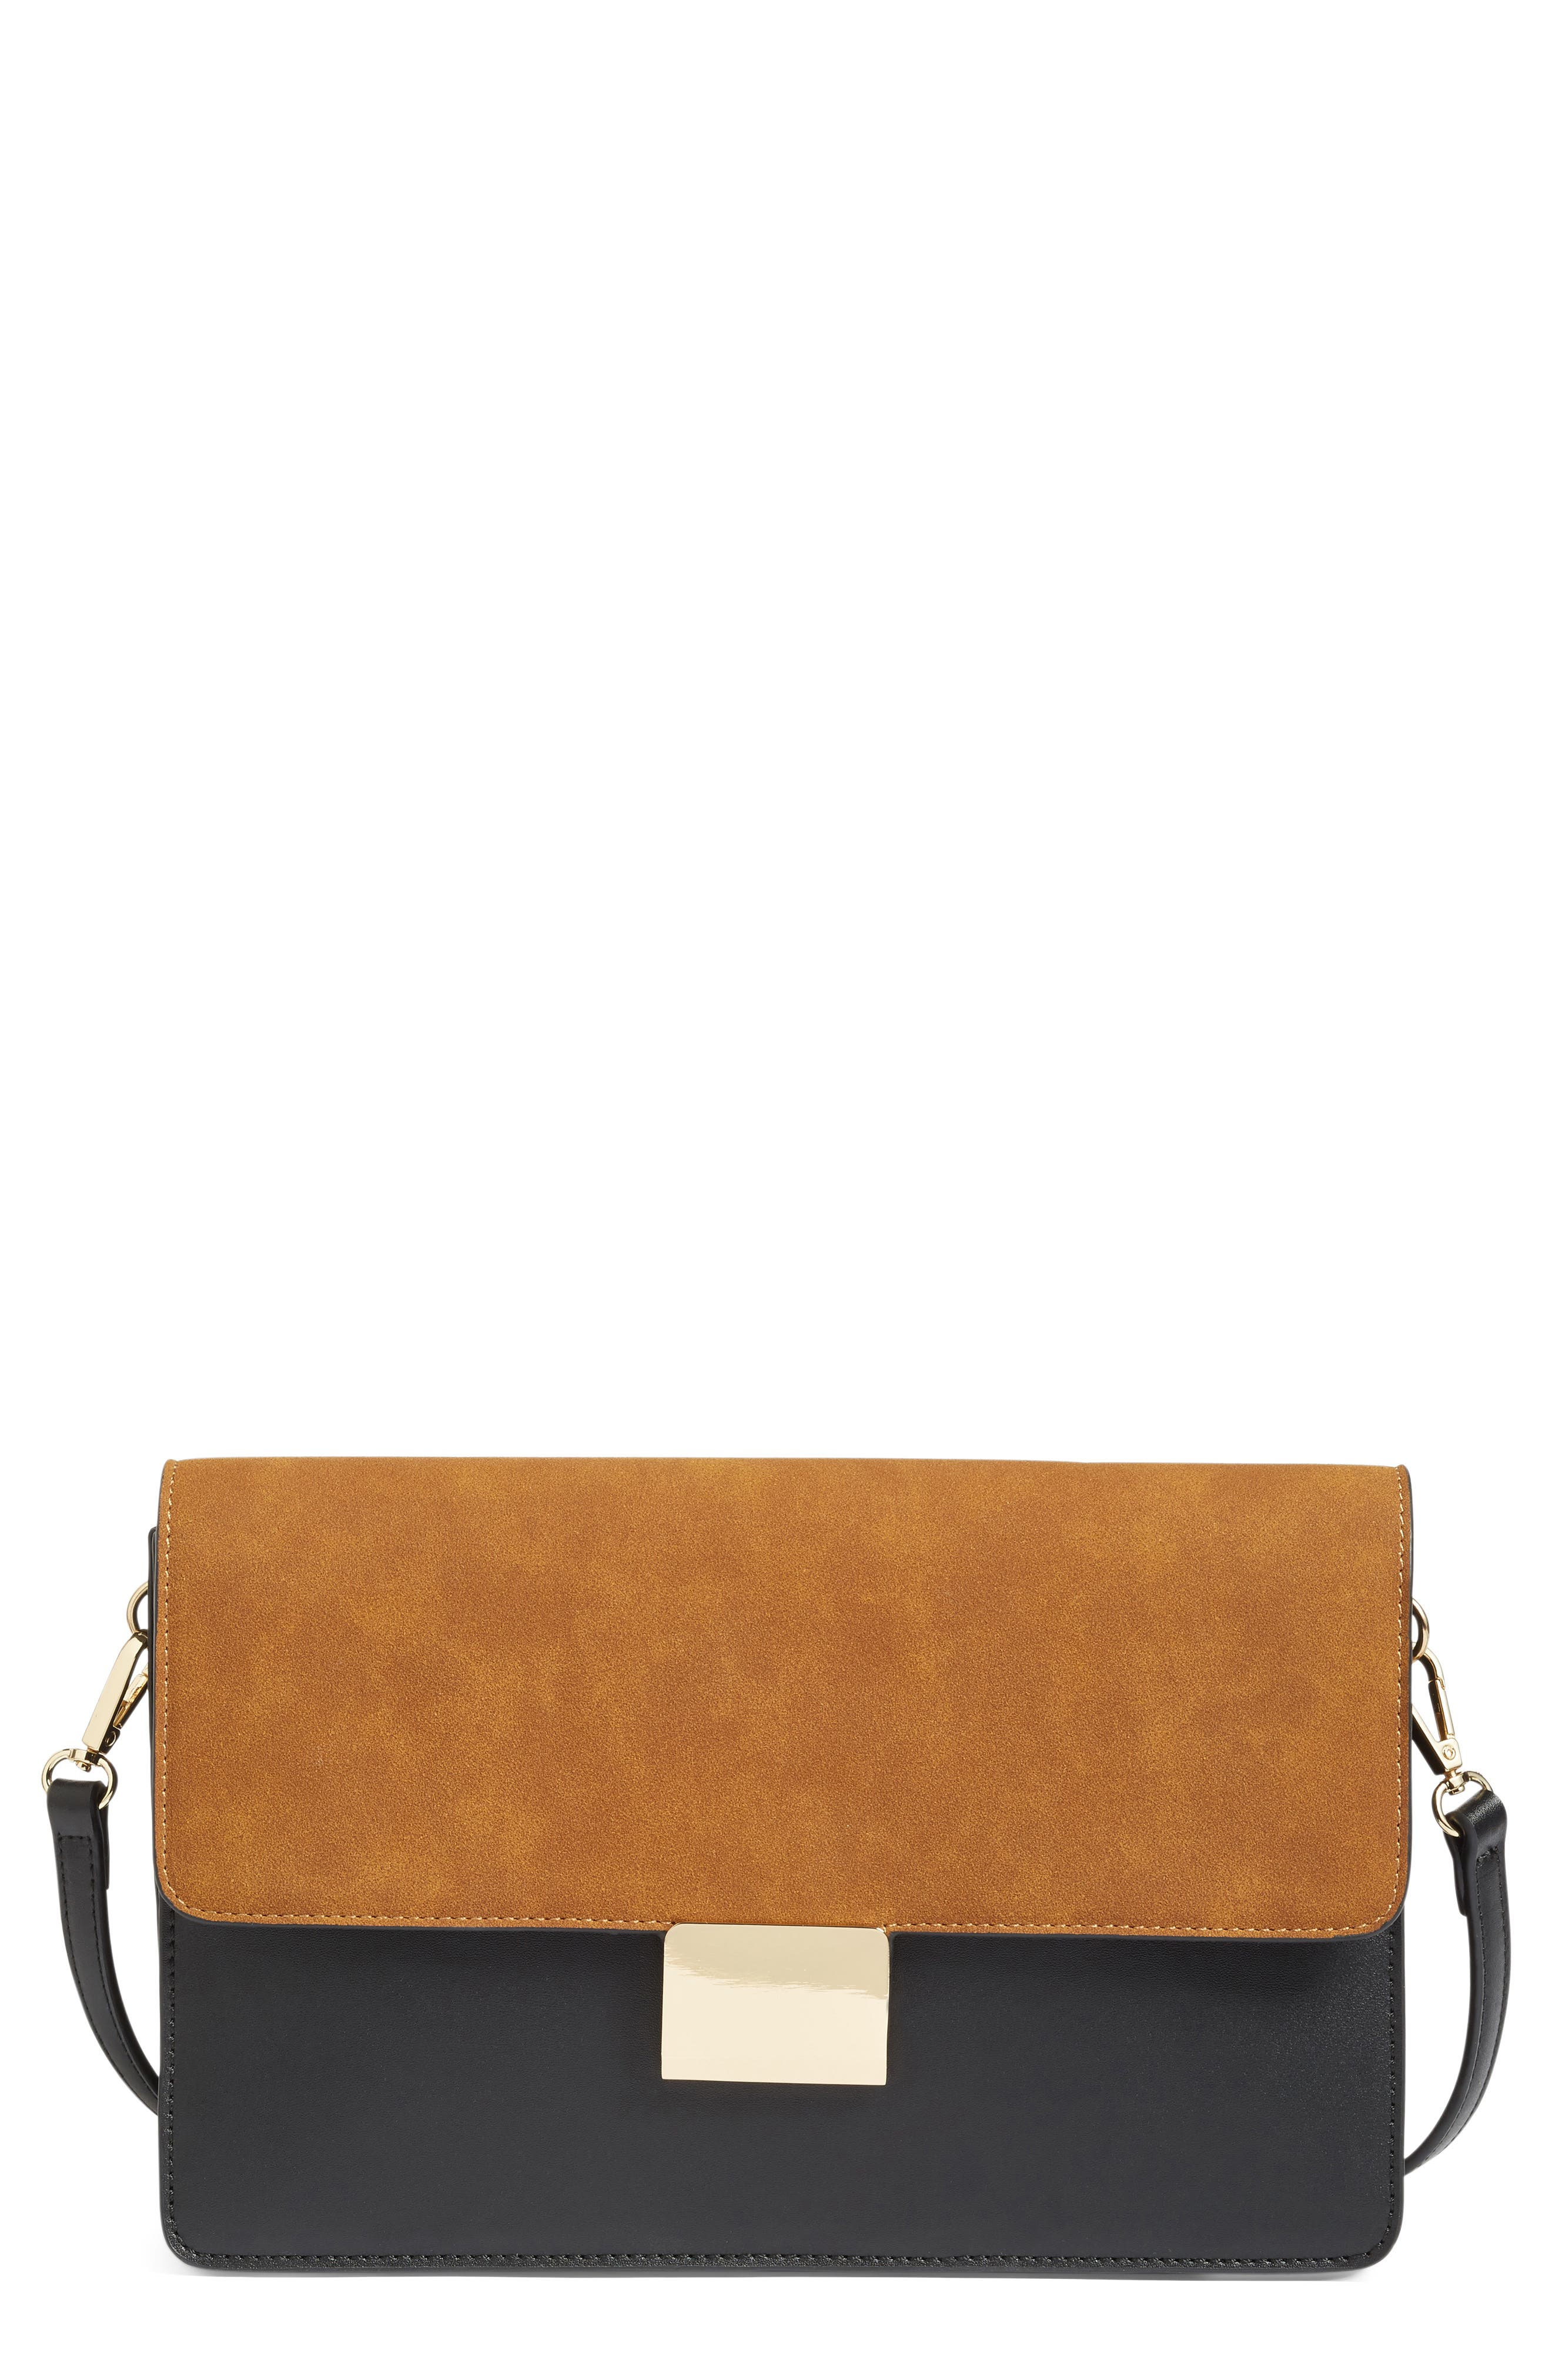 Leighton Colorblock Faux Leather Crossbody Bag,                         Main,                         color, 001